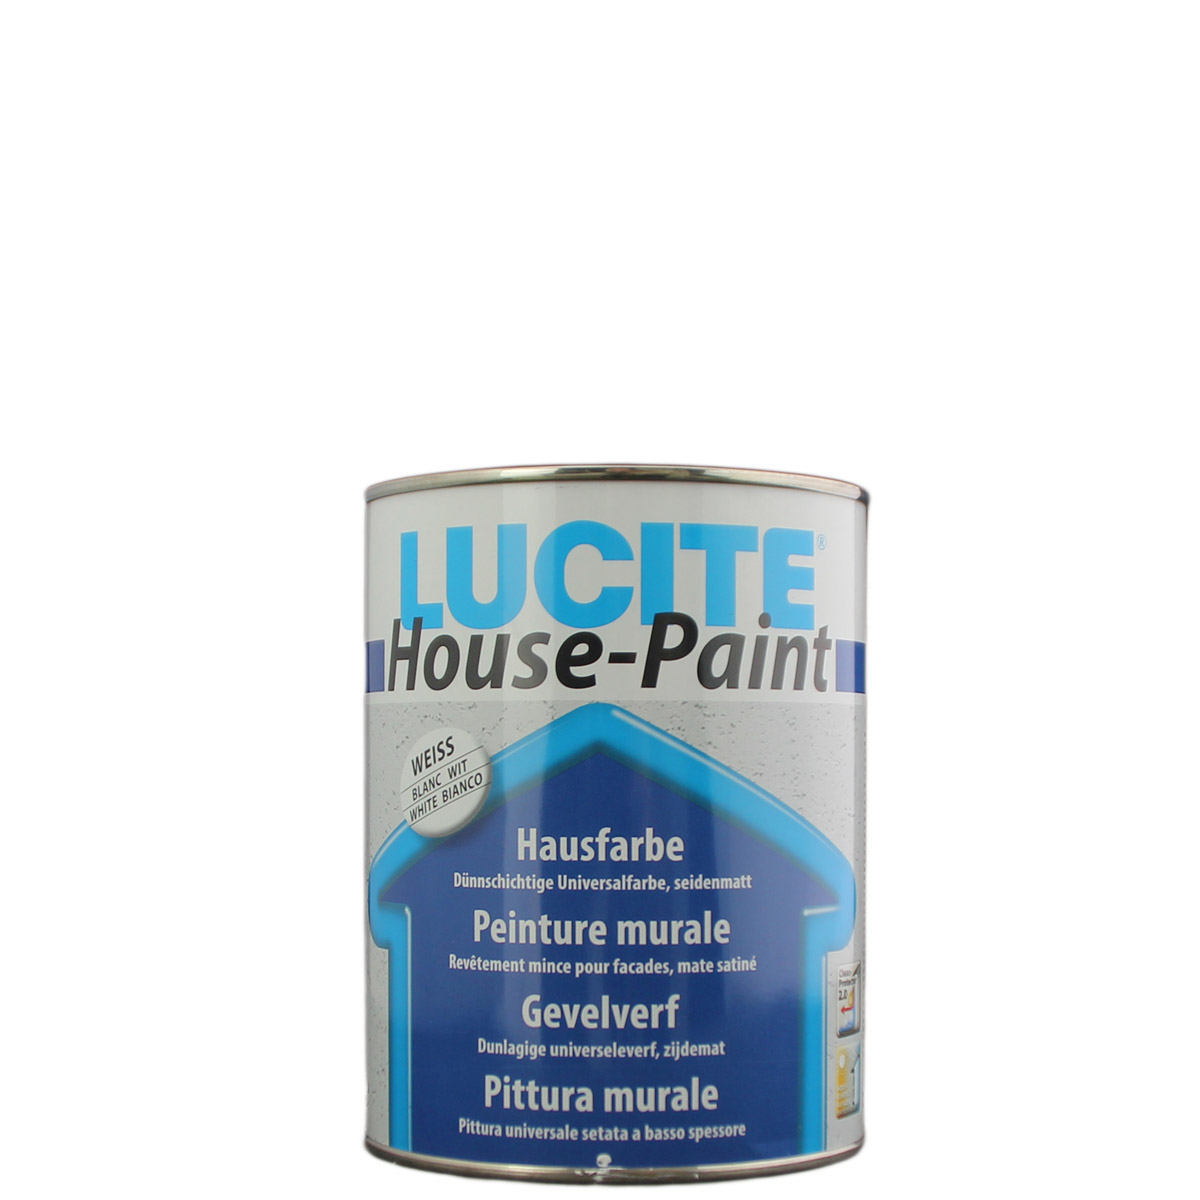 Lucite House Paint 1L weiss 1000T, Hausfarbe, Fassadenfarbe